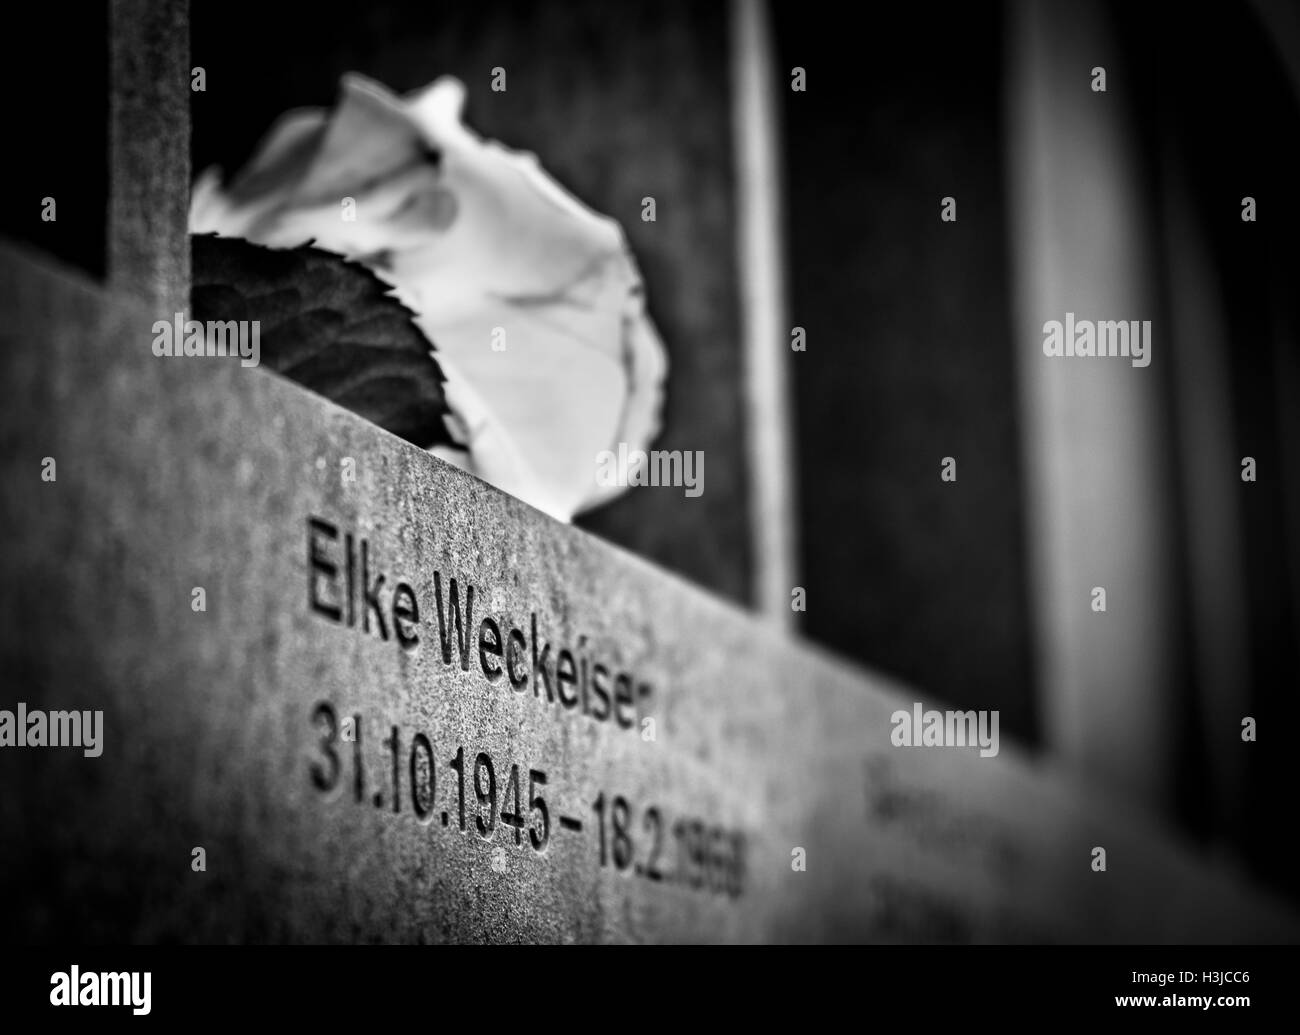 A rose commemorating a victim who died trying to reach West Berlin during the rule of the DDR in East Germany. - Stock Image